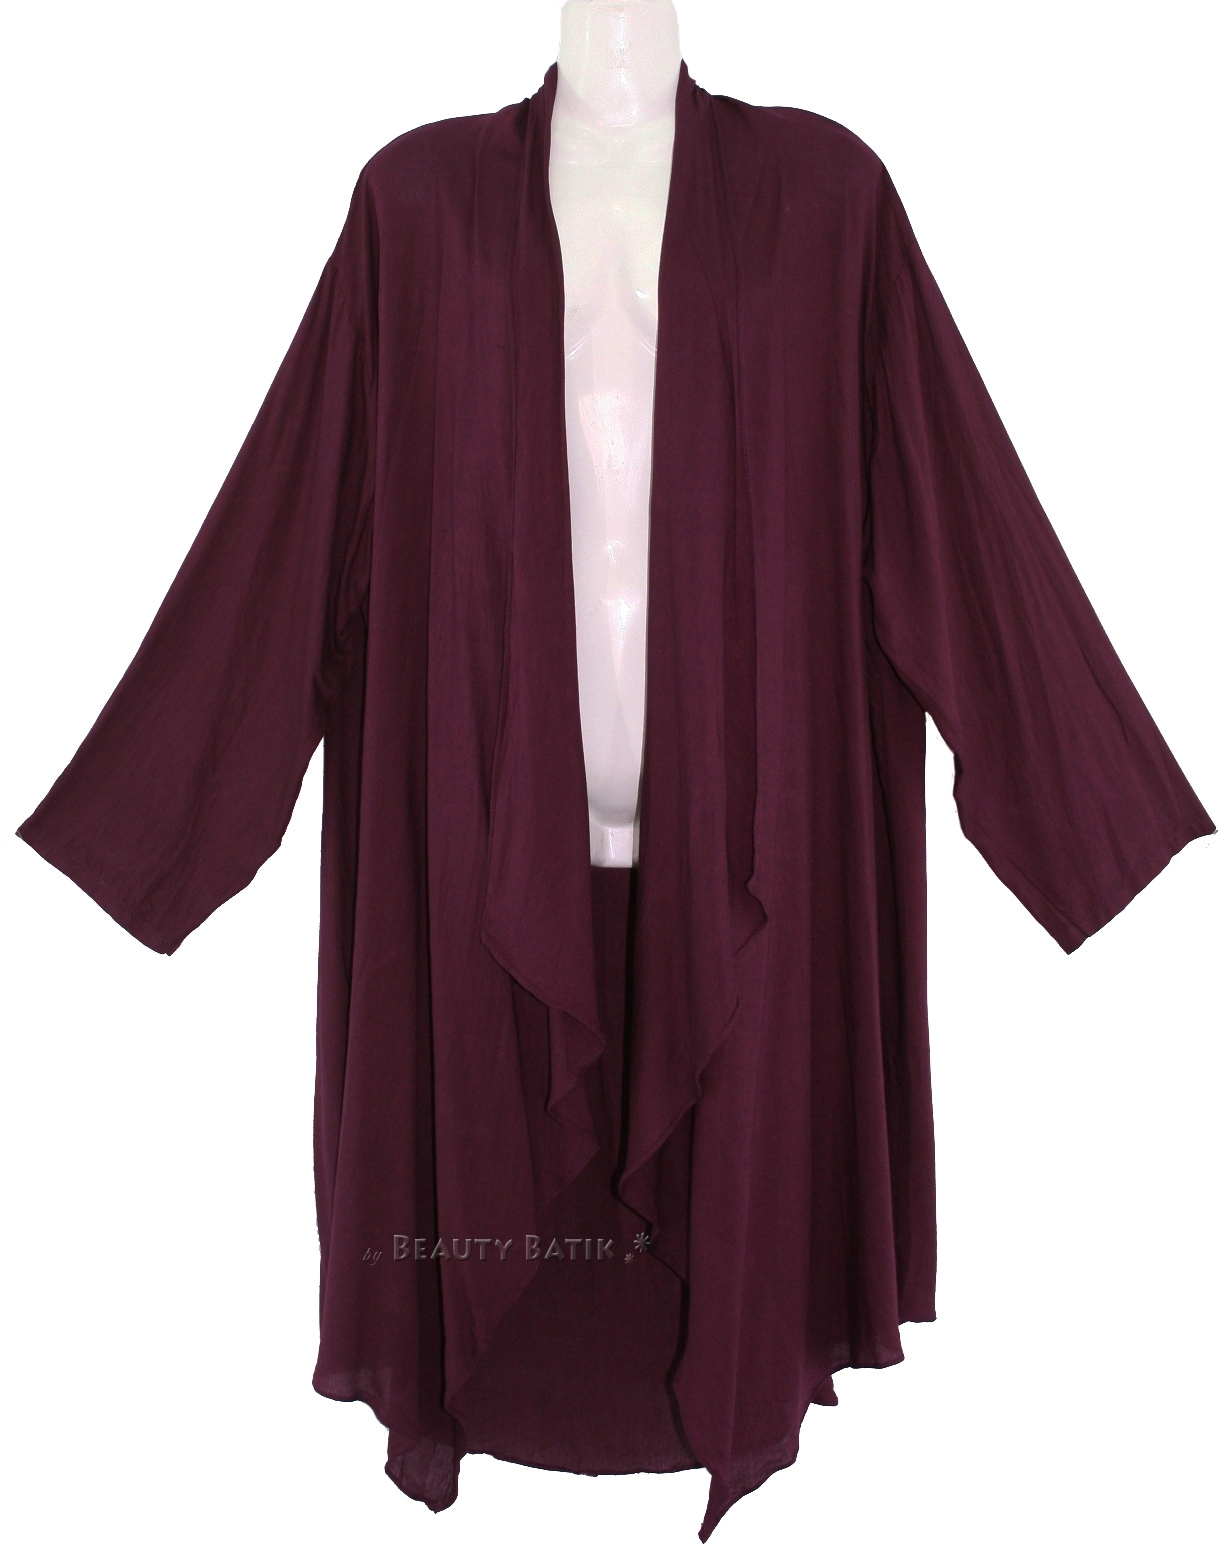 women lagenlook duster plus size long coverup jacket 1x 2x 18 20 ebay. Black Bedroom Furniture Sets. Home Design Ideas